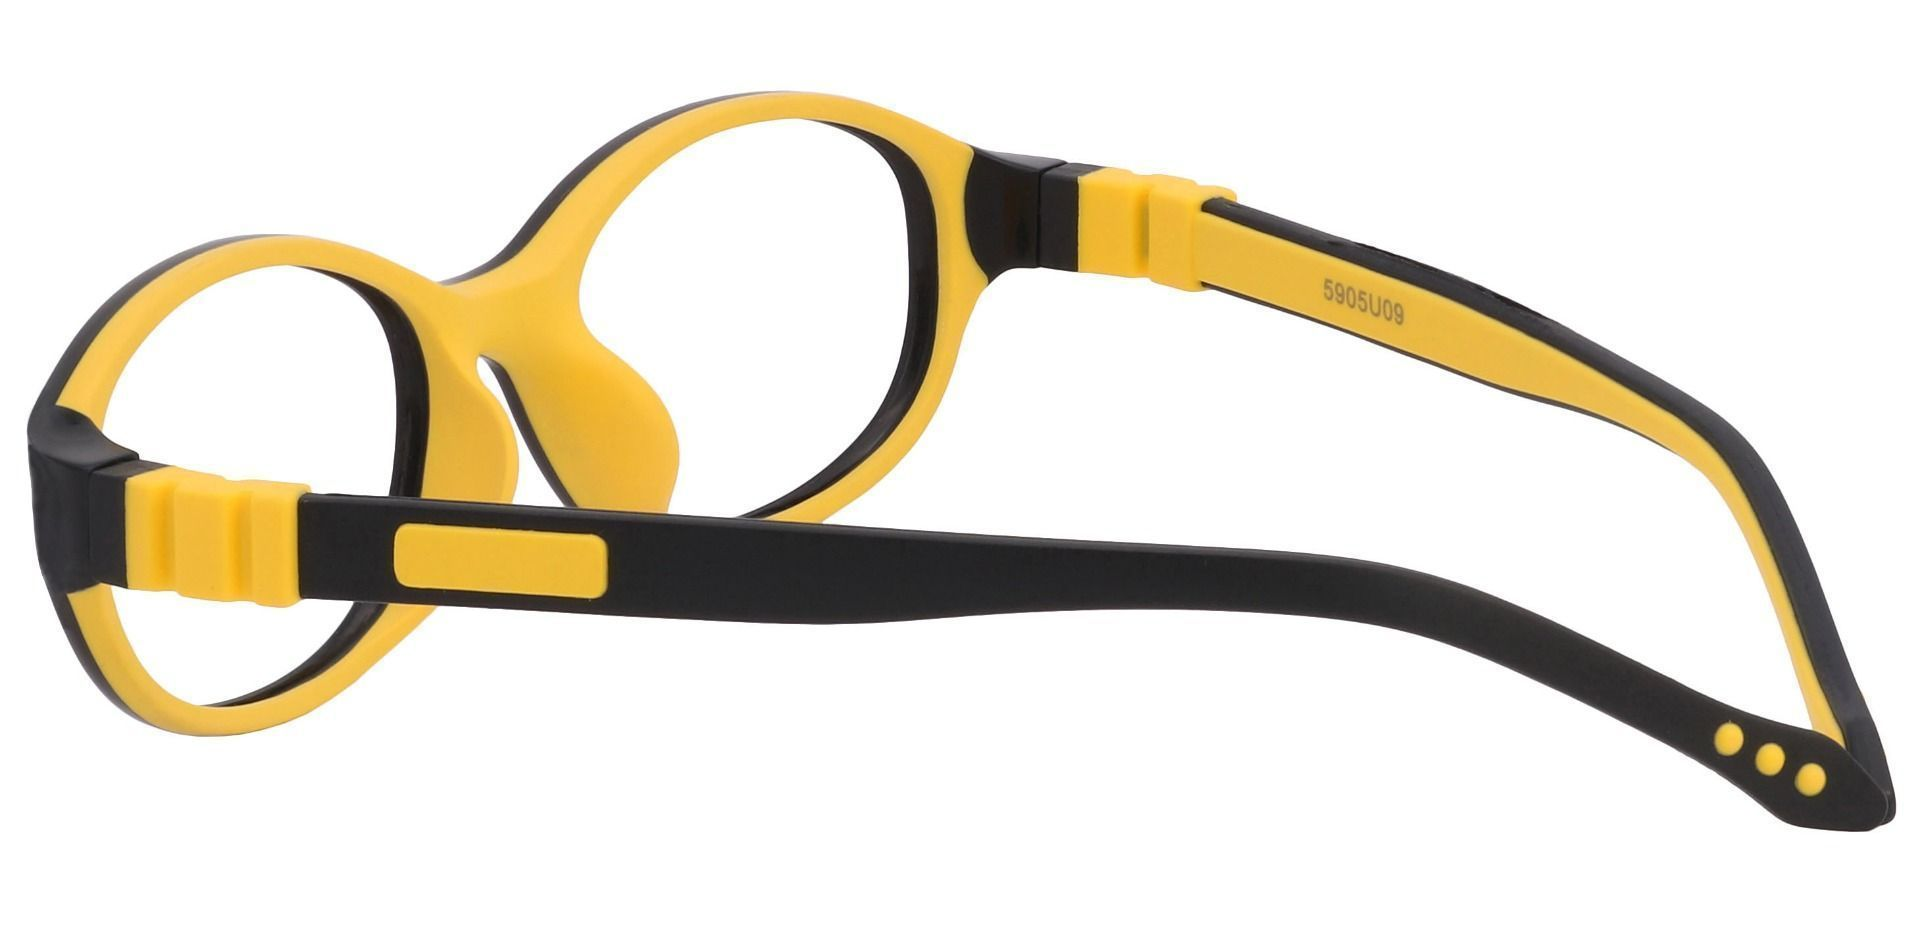 Stone Oval Prescription Glasses - The Frame Is Black And Yellow